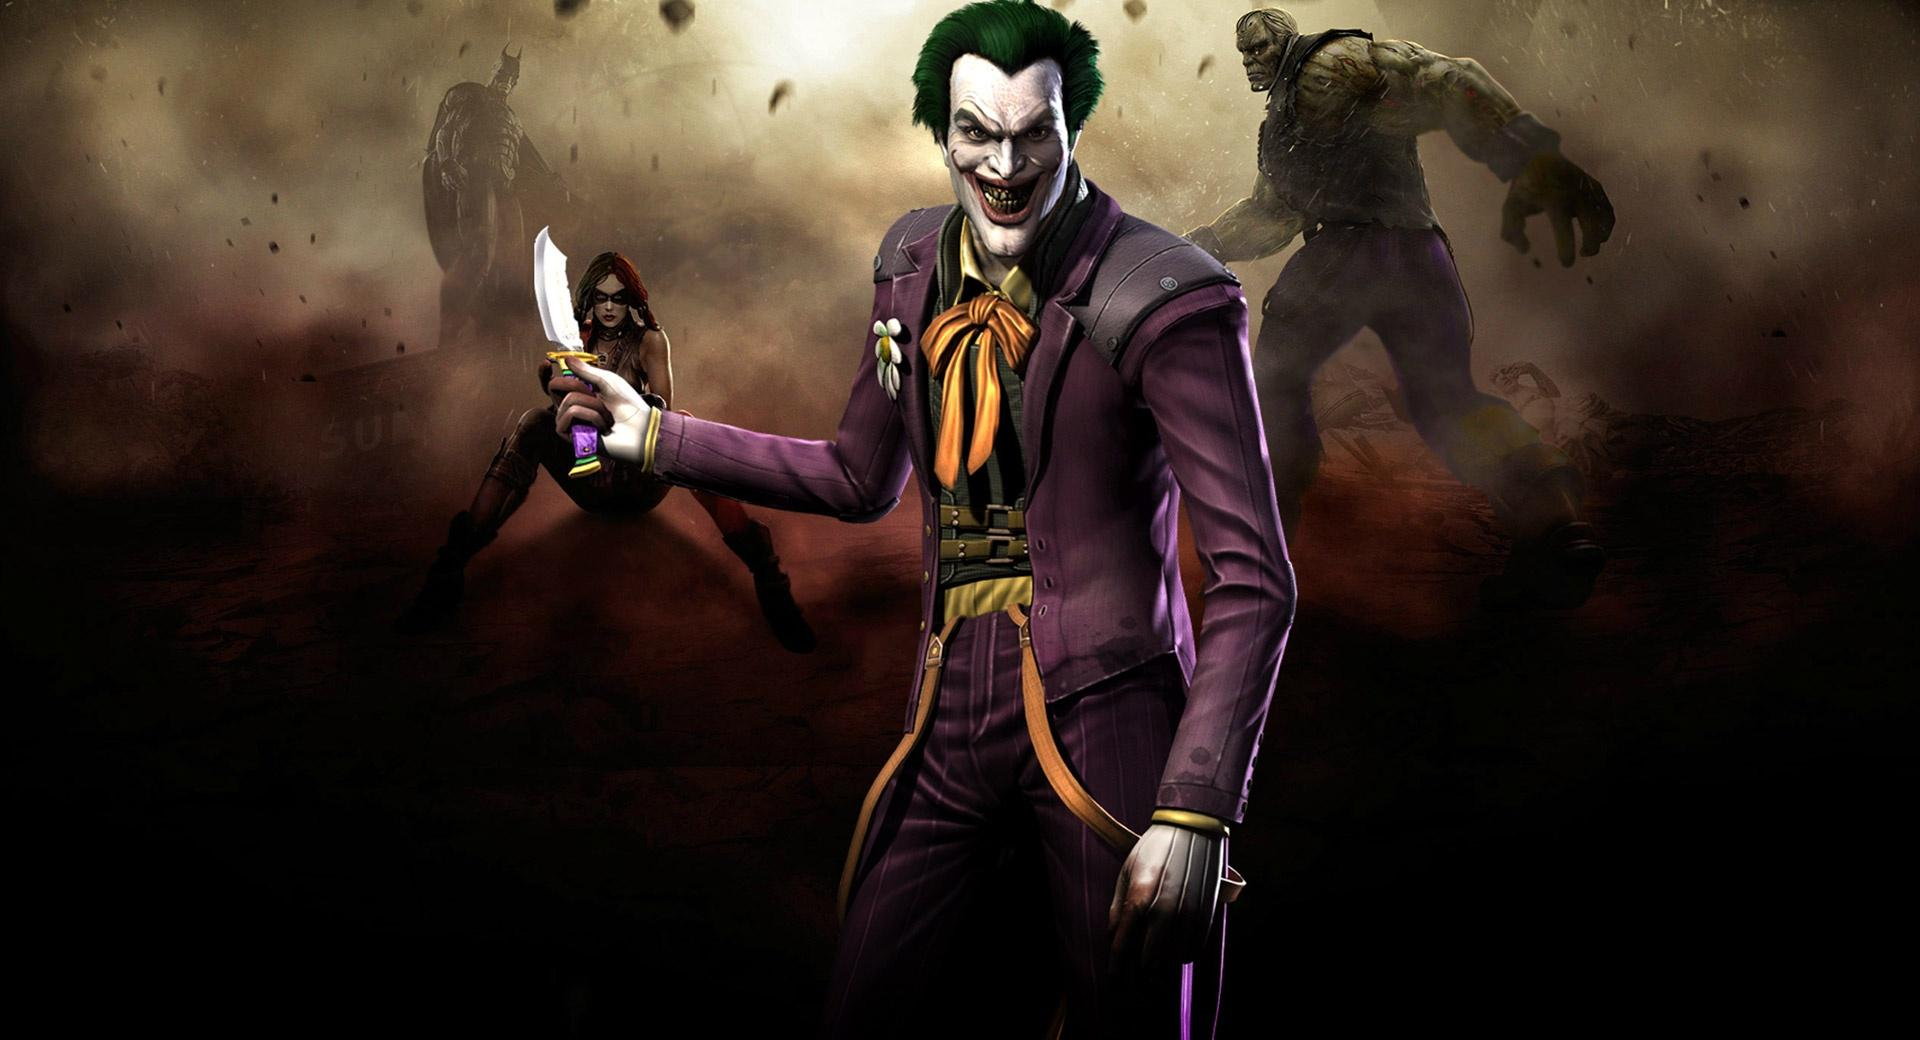 Injustice Gods Among Us - Joker wallpapers HD quality